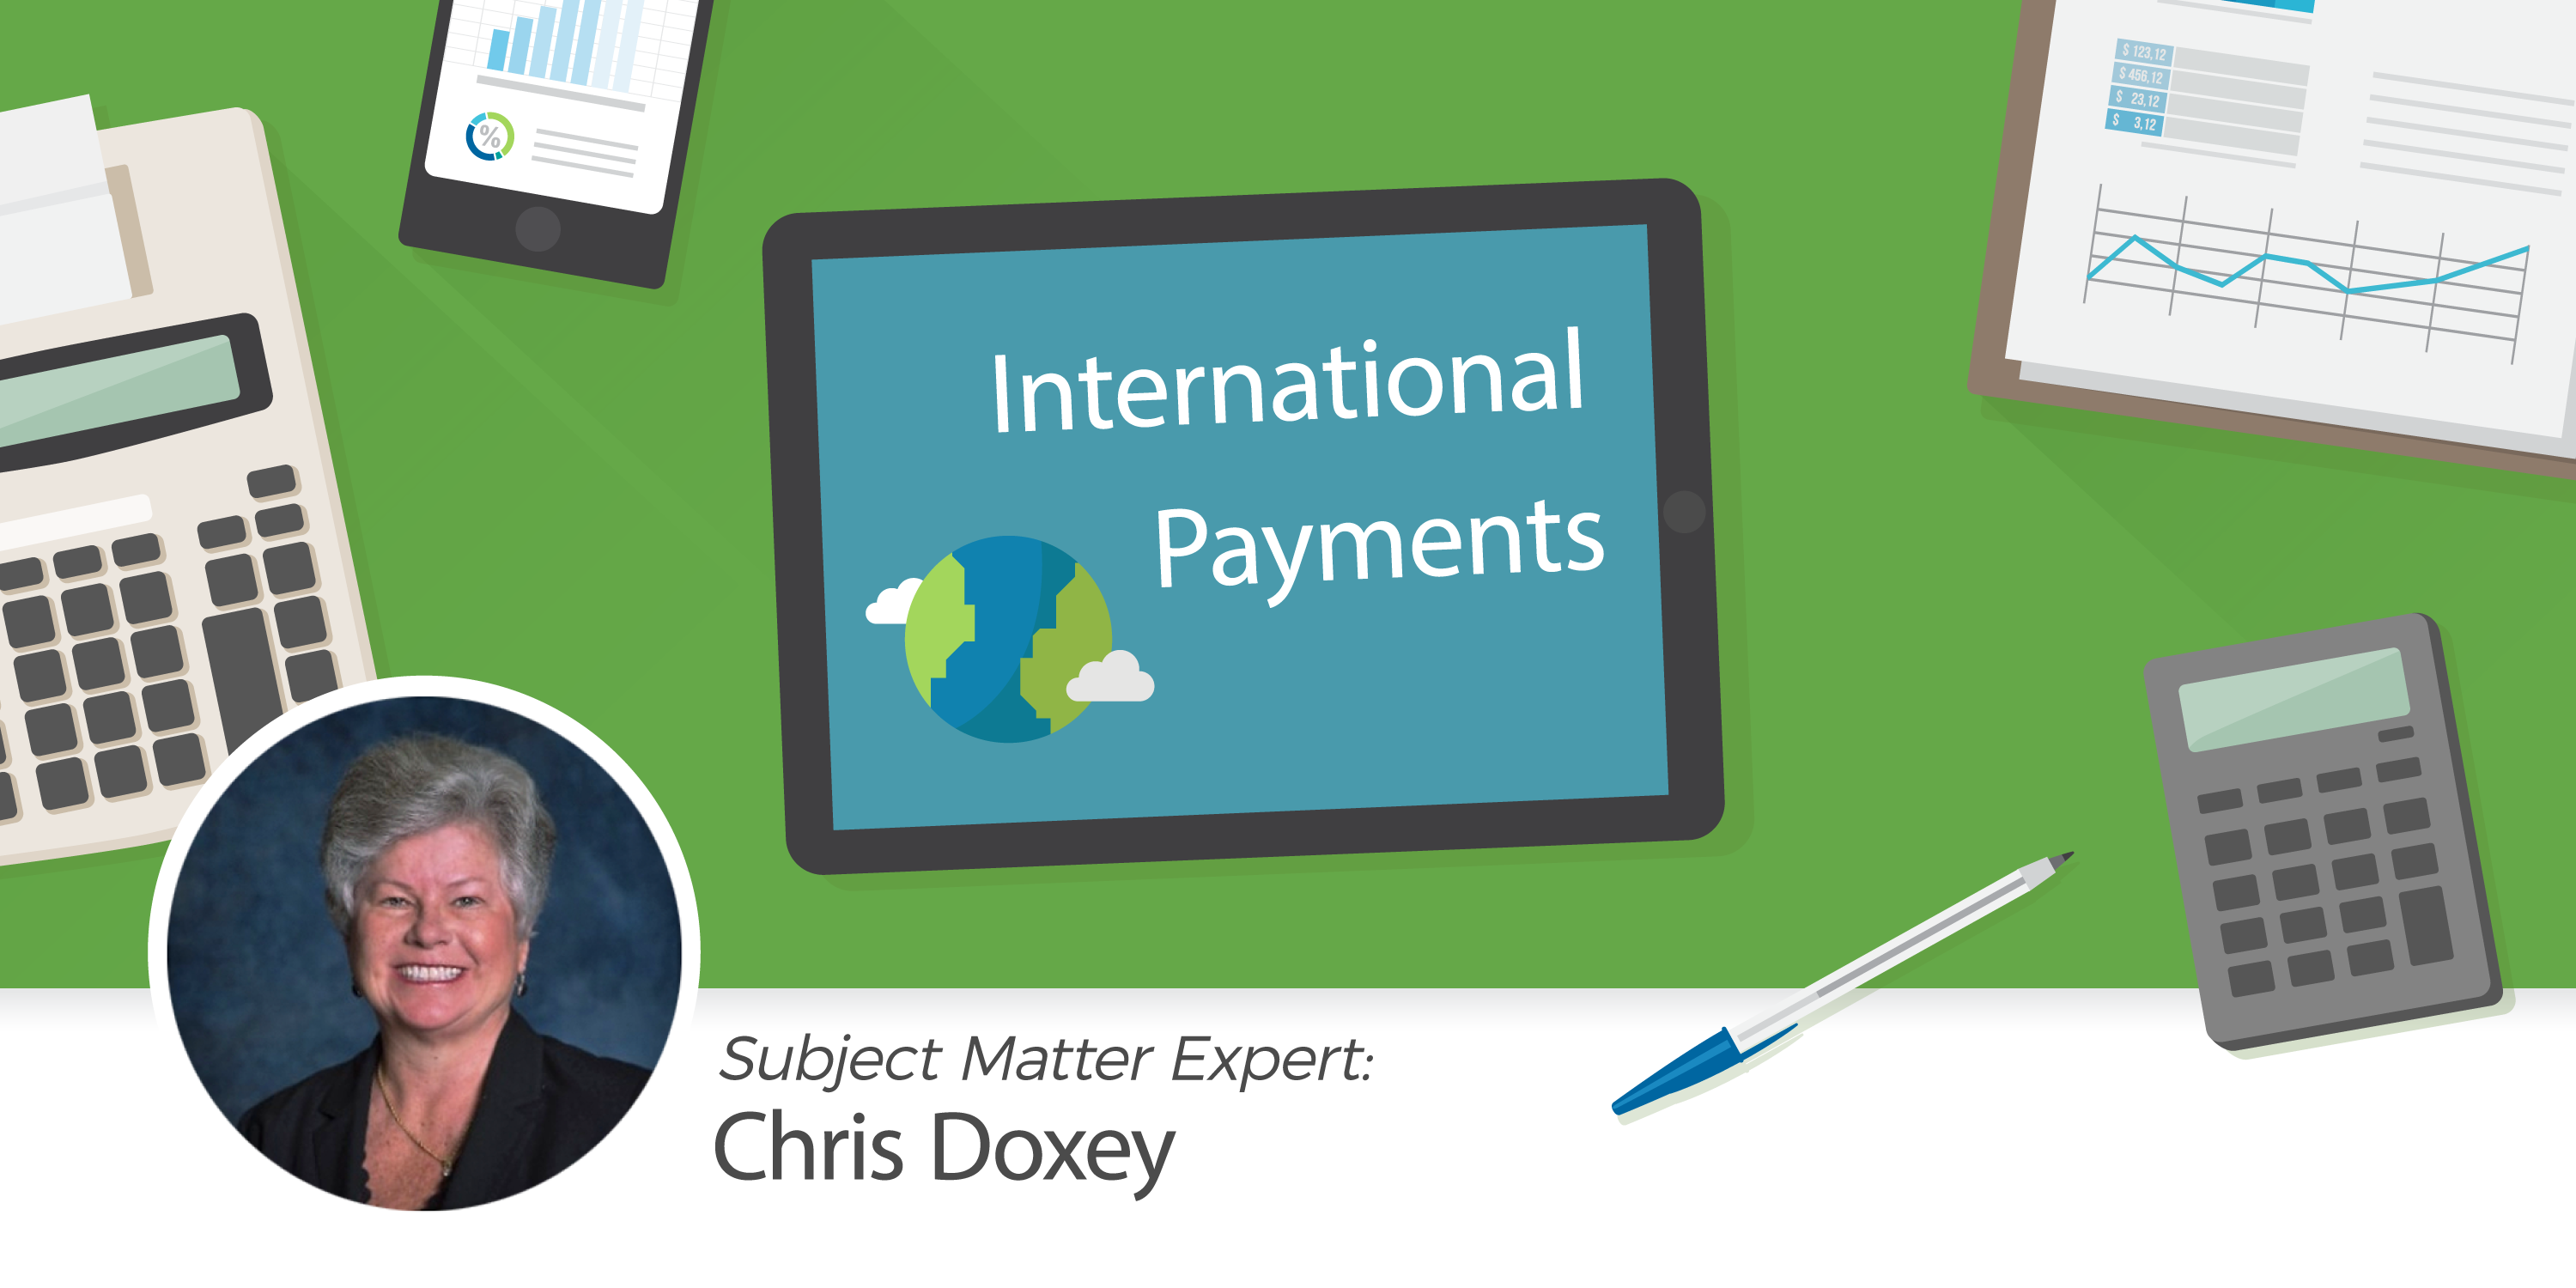 accounting expert Chris Doxey presents blockchain, fintech, and international payments